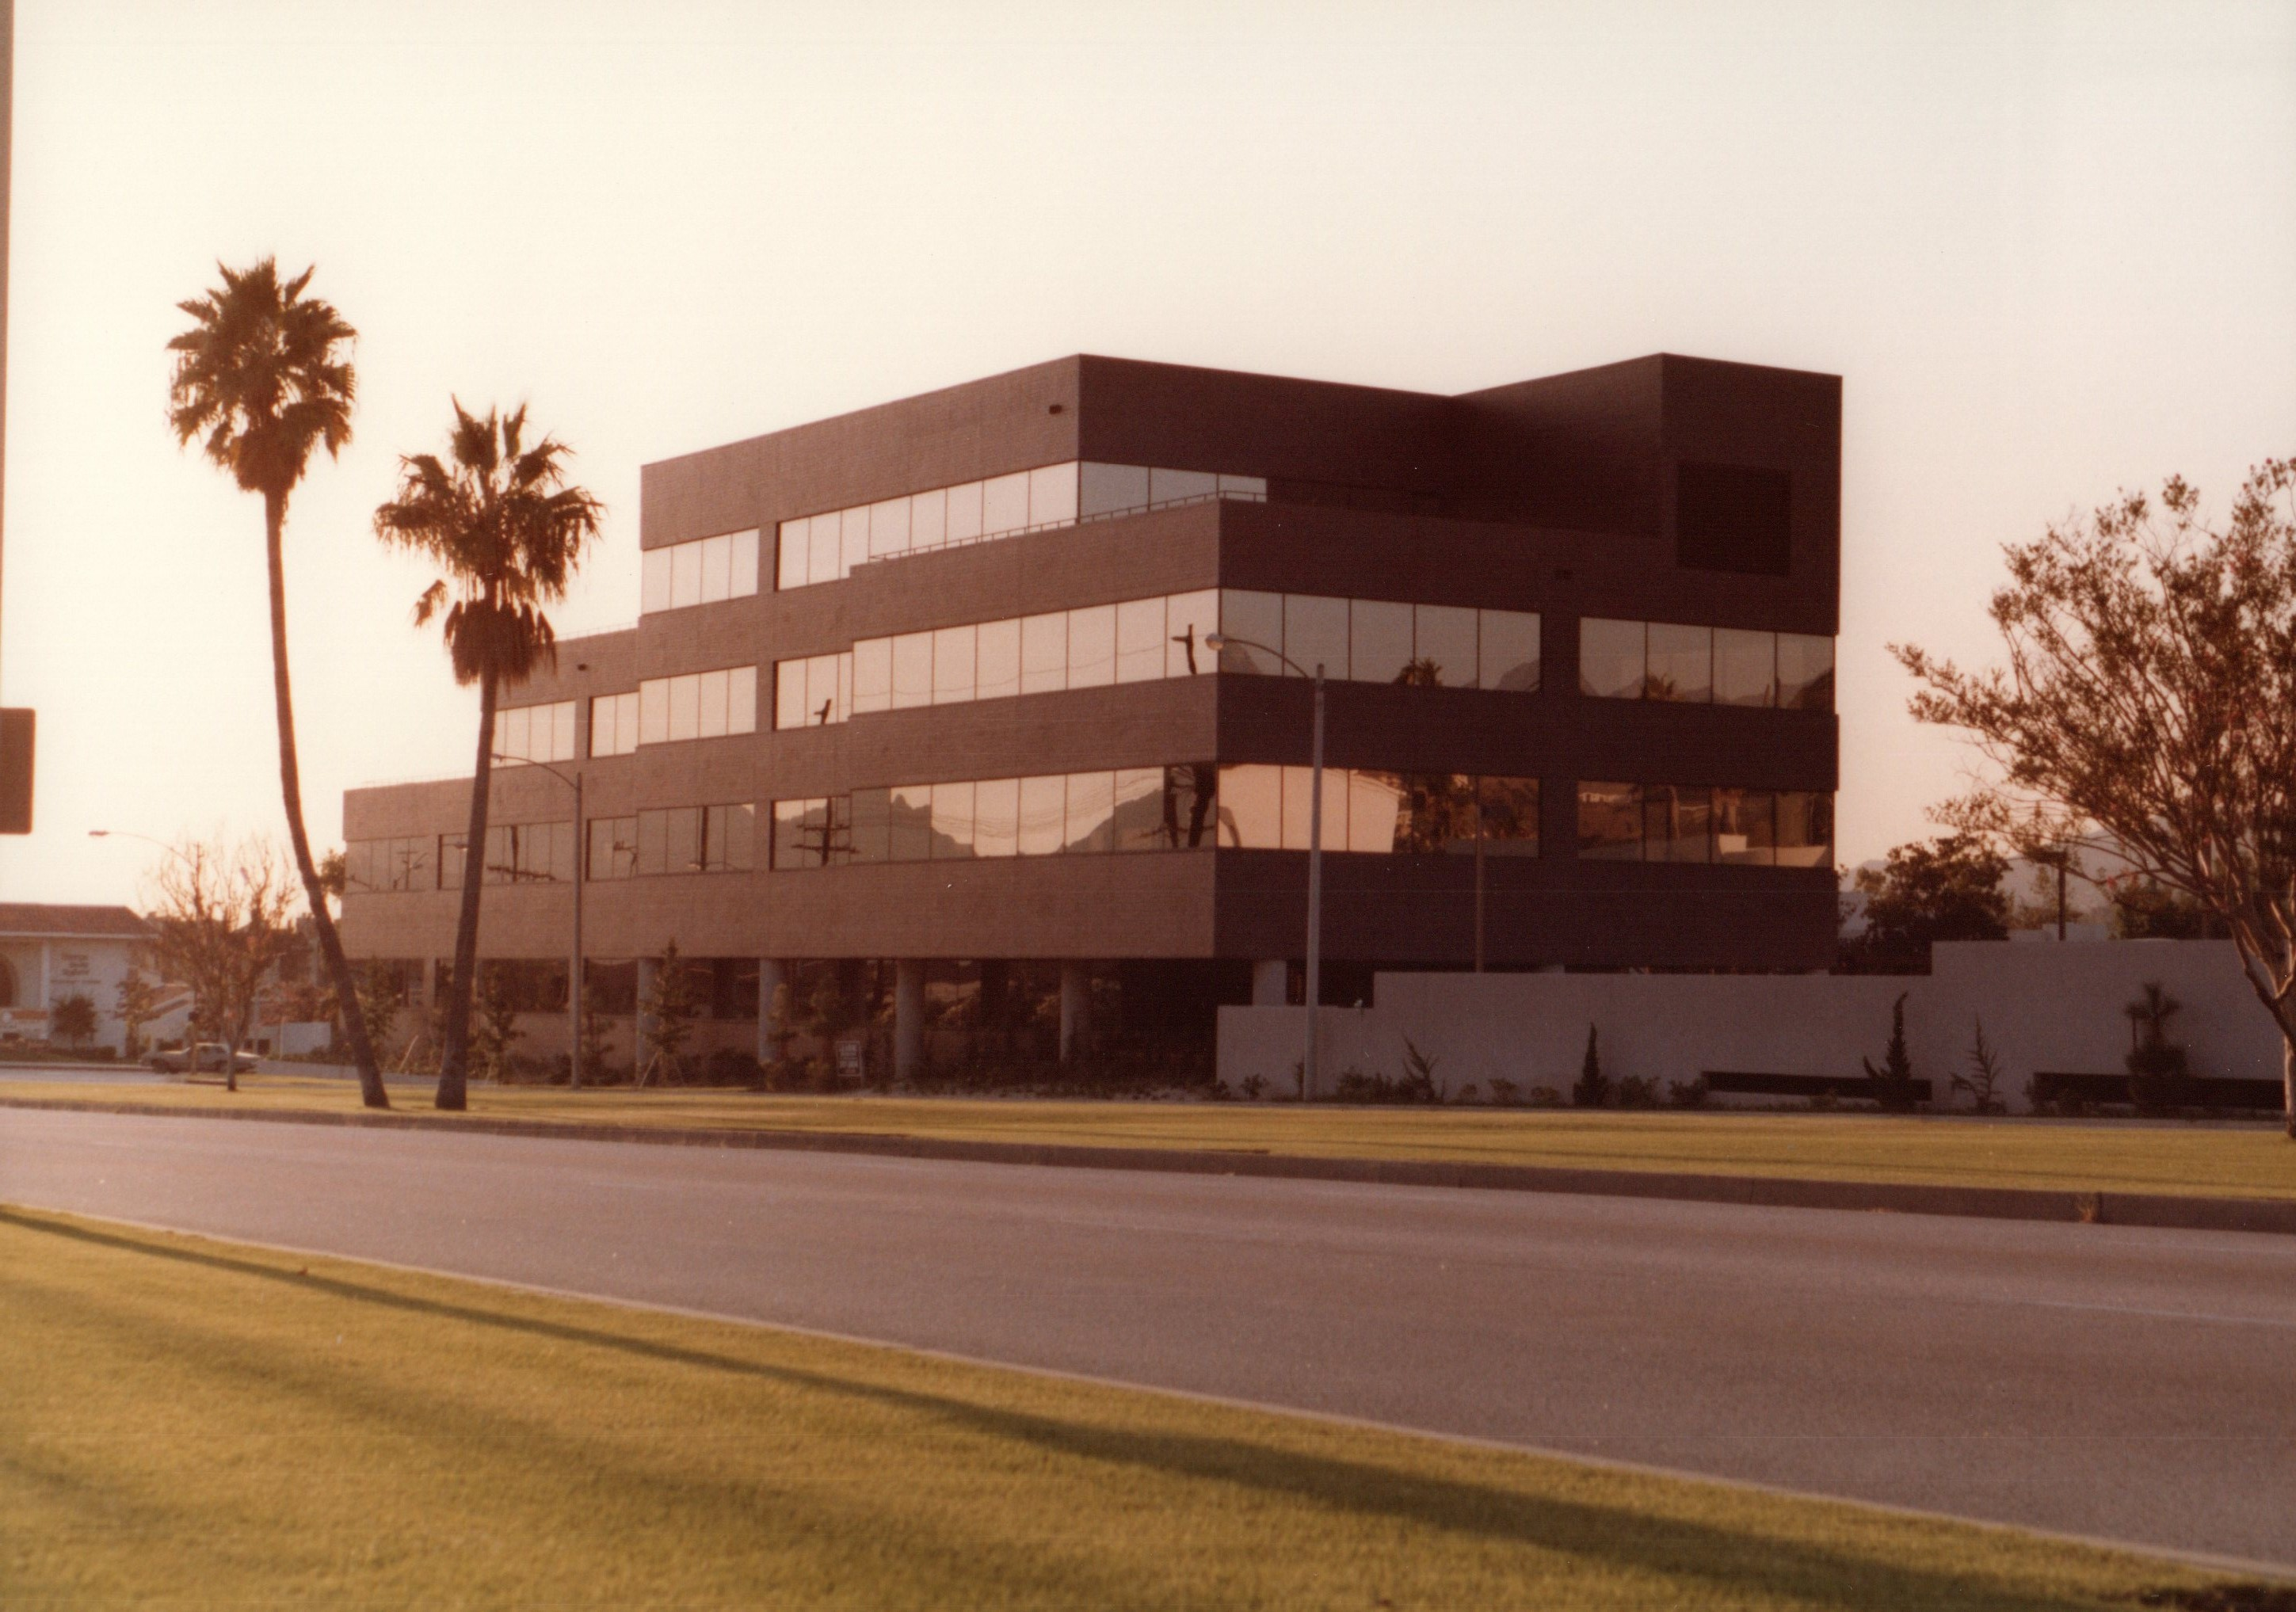 Glendale Pacific Federal Office Building